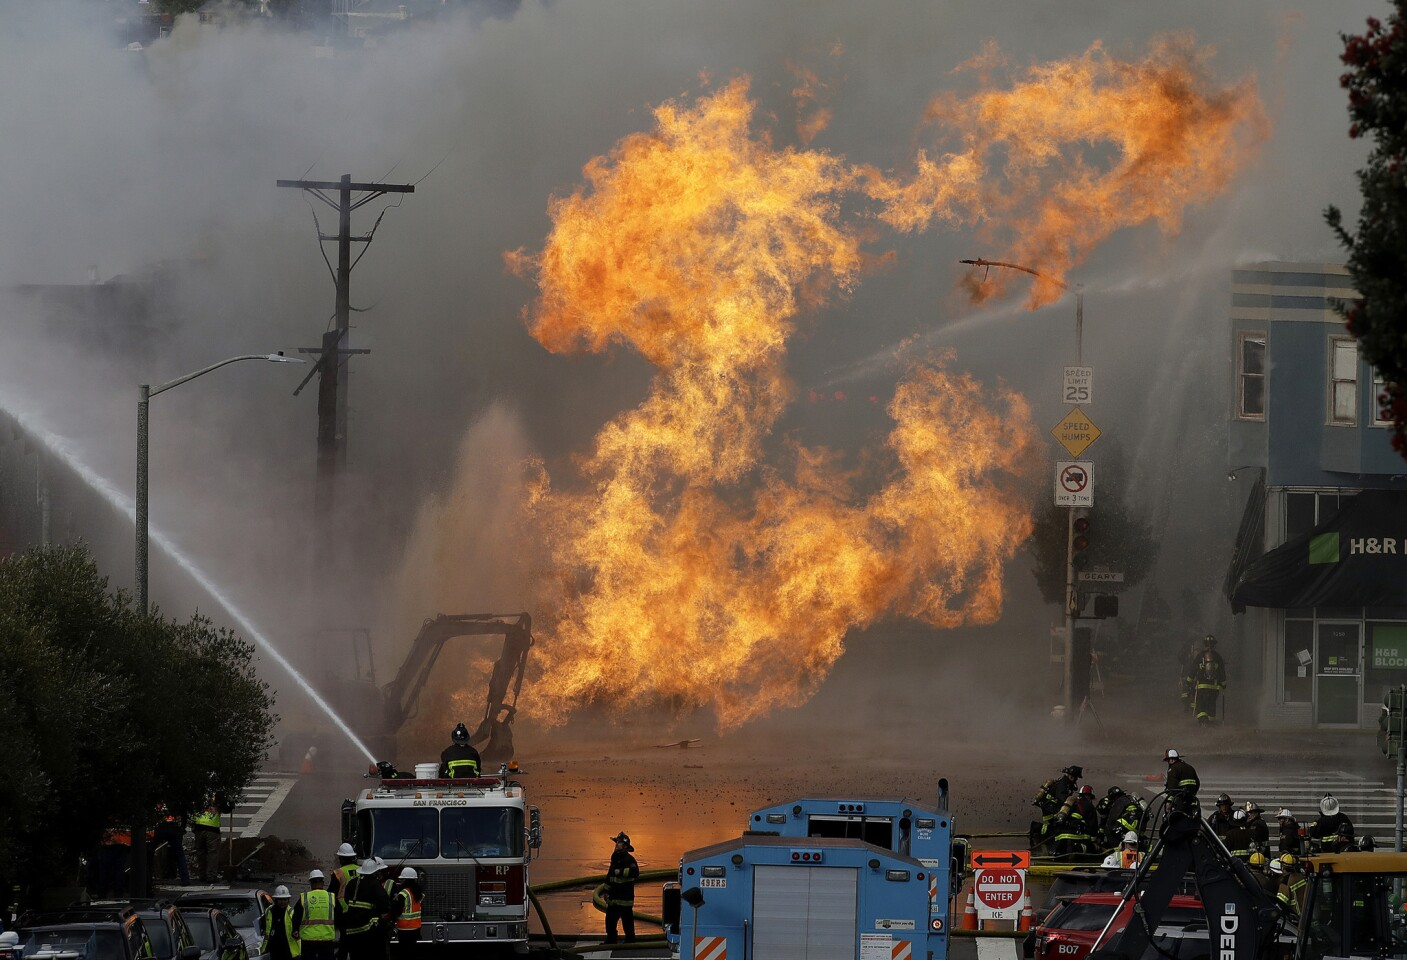 A gas explosion in San Francisco shot flames high into the air Wednesday and was burning four buildings as utility crews scrambled to shut off the flow of gas. Construction workers may have cut a natural gas line, Fire Chief Joanne Hayes-White said.